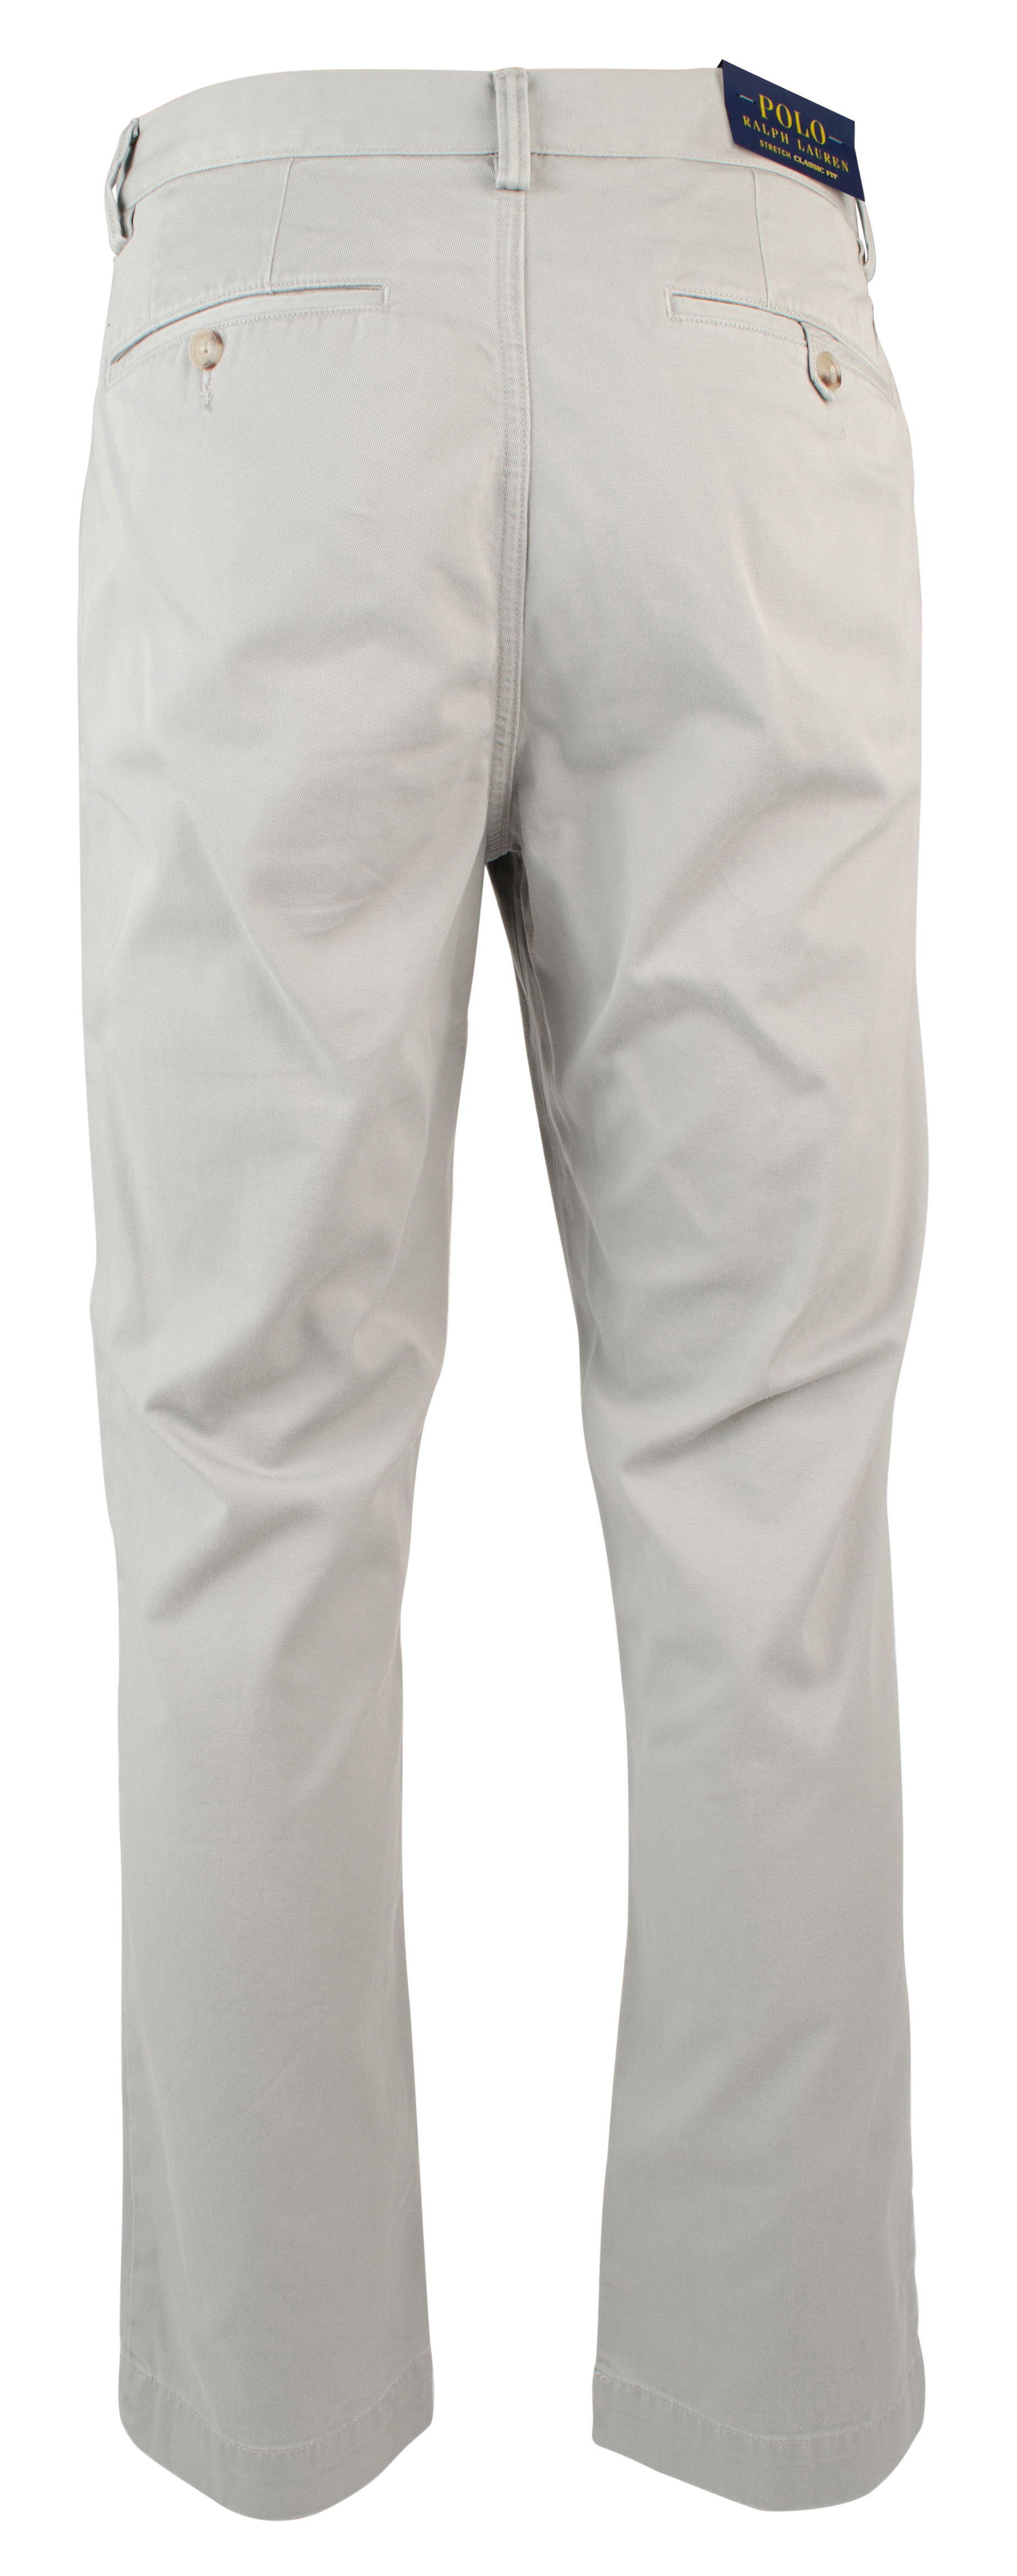 23163af0d97ed3 Polo Ralph Lauren Men's Big & Tall Straight-Fit Stretch Chino Pants ...